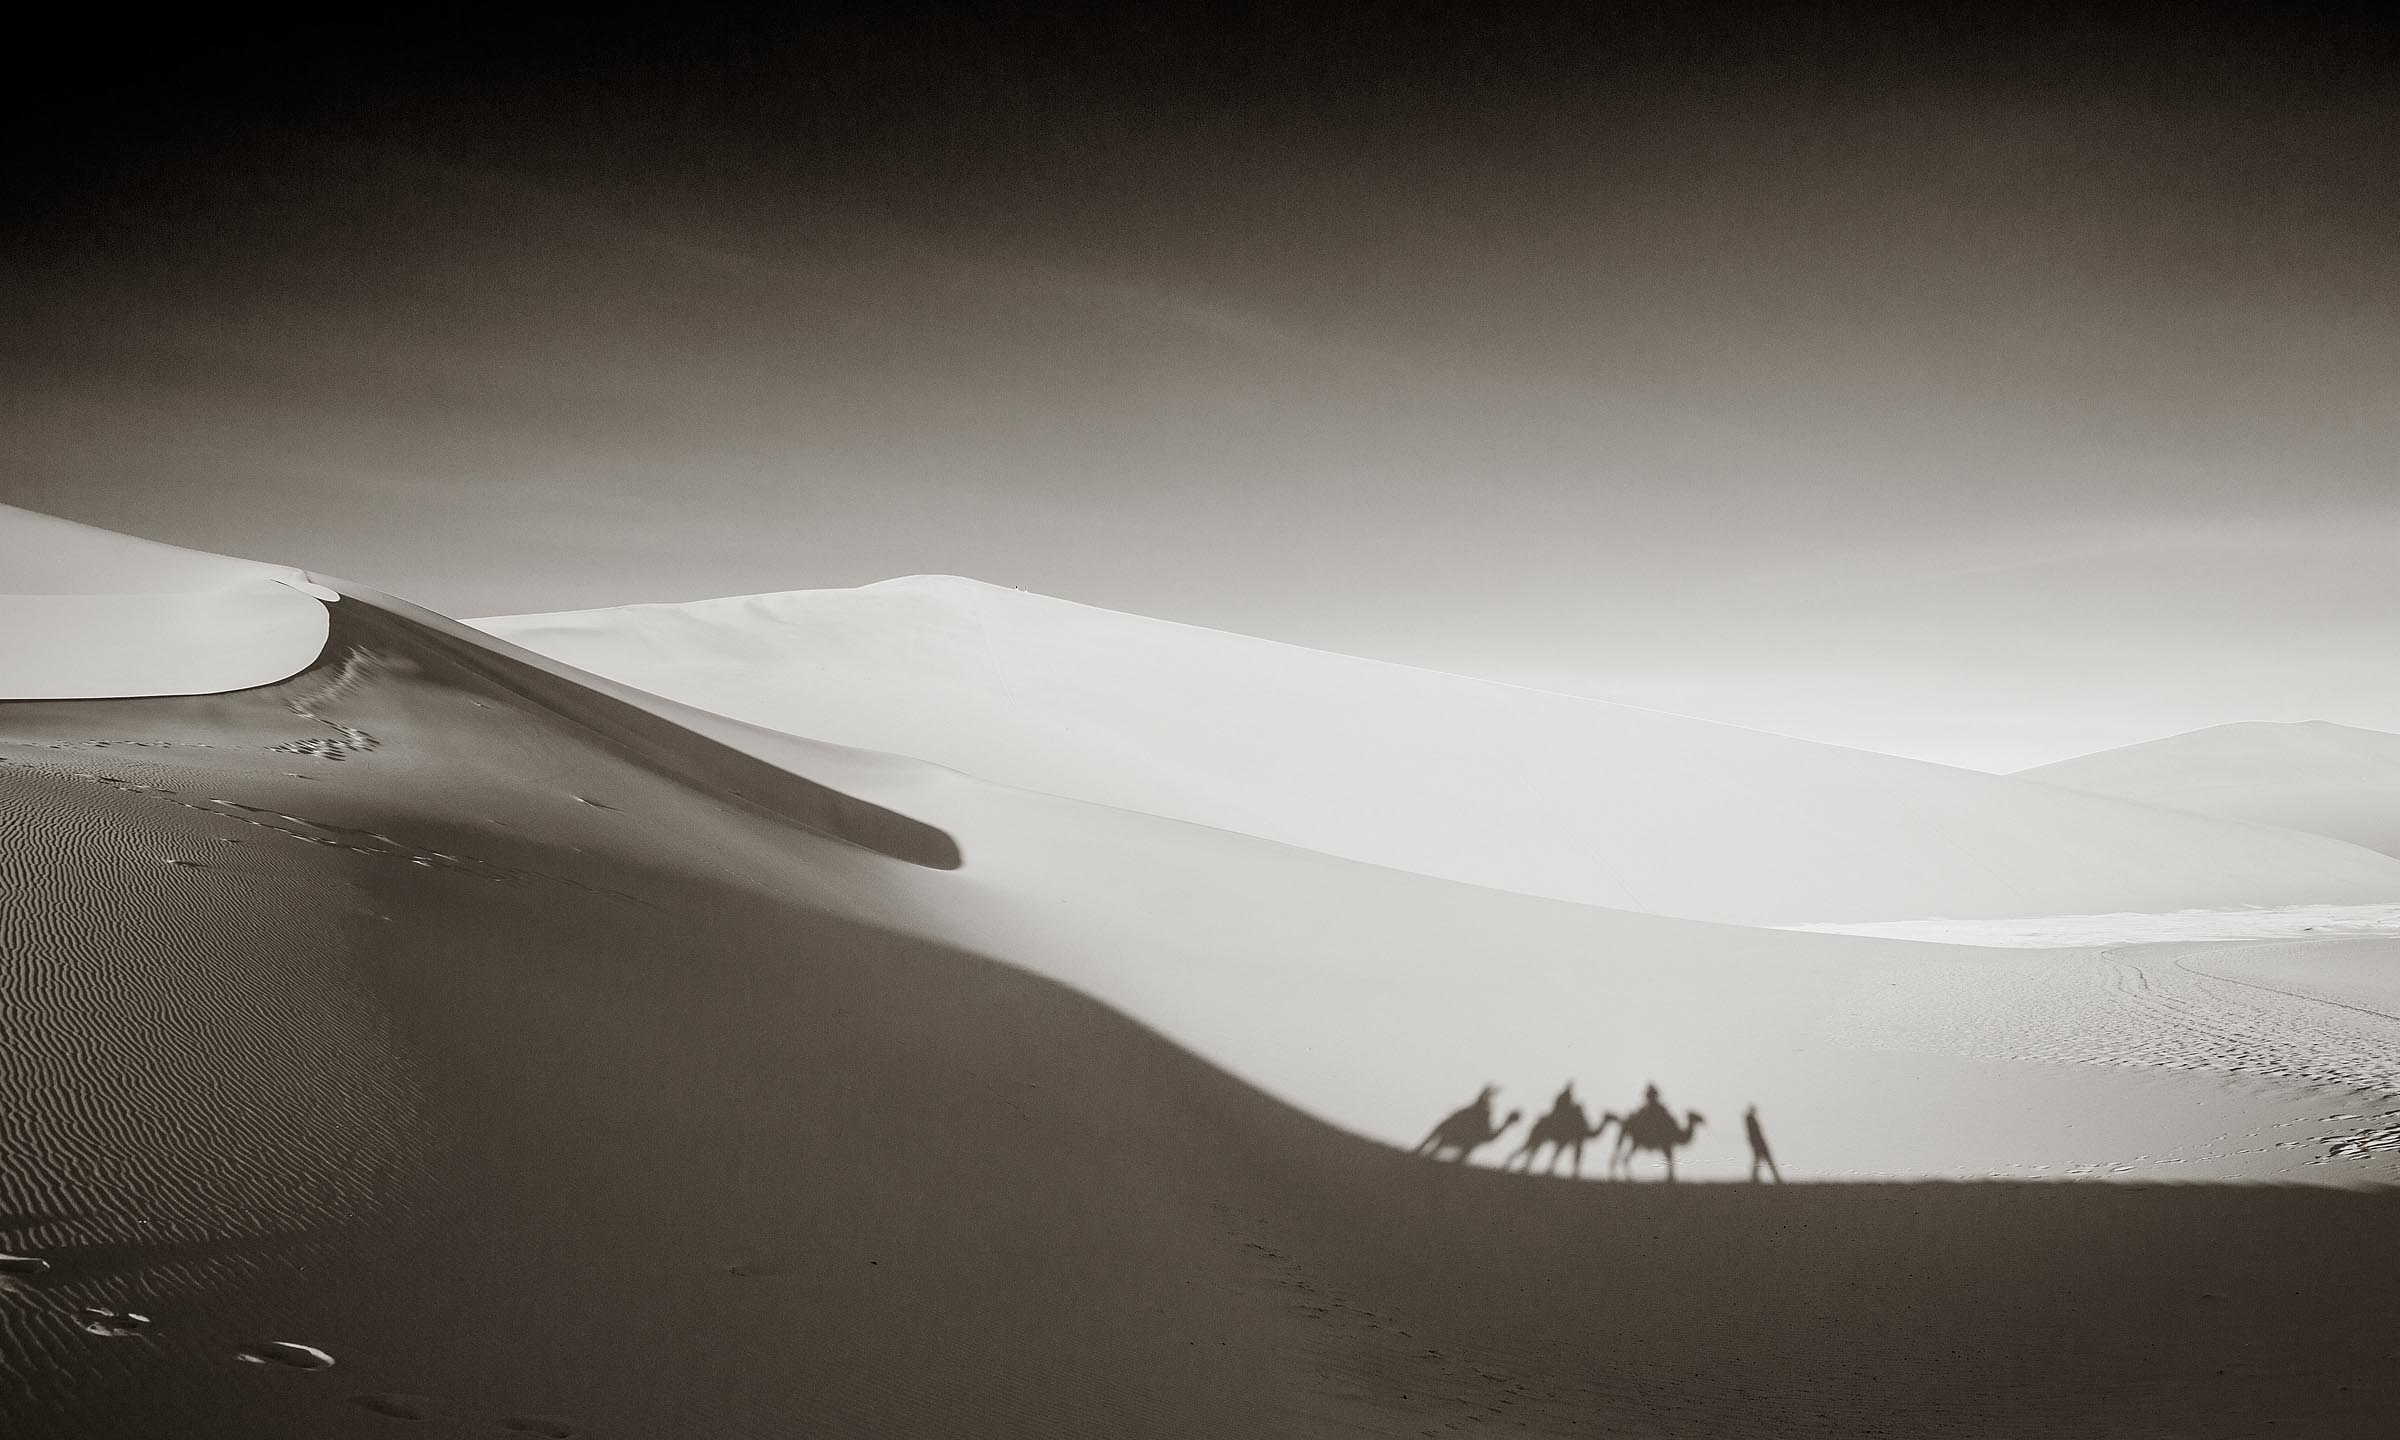 A mini caravan makes its way across the sand after a sunrise trek.